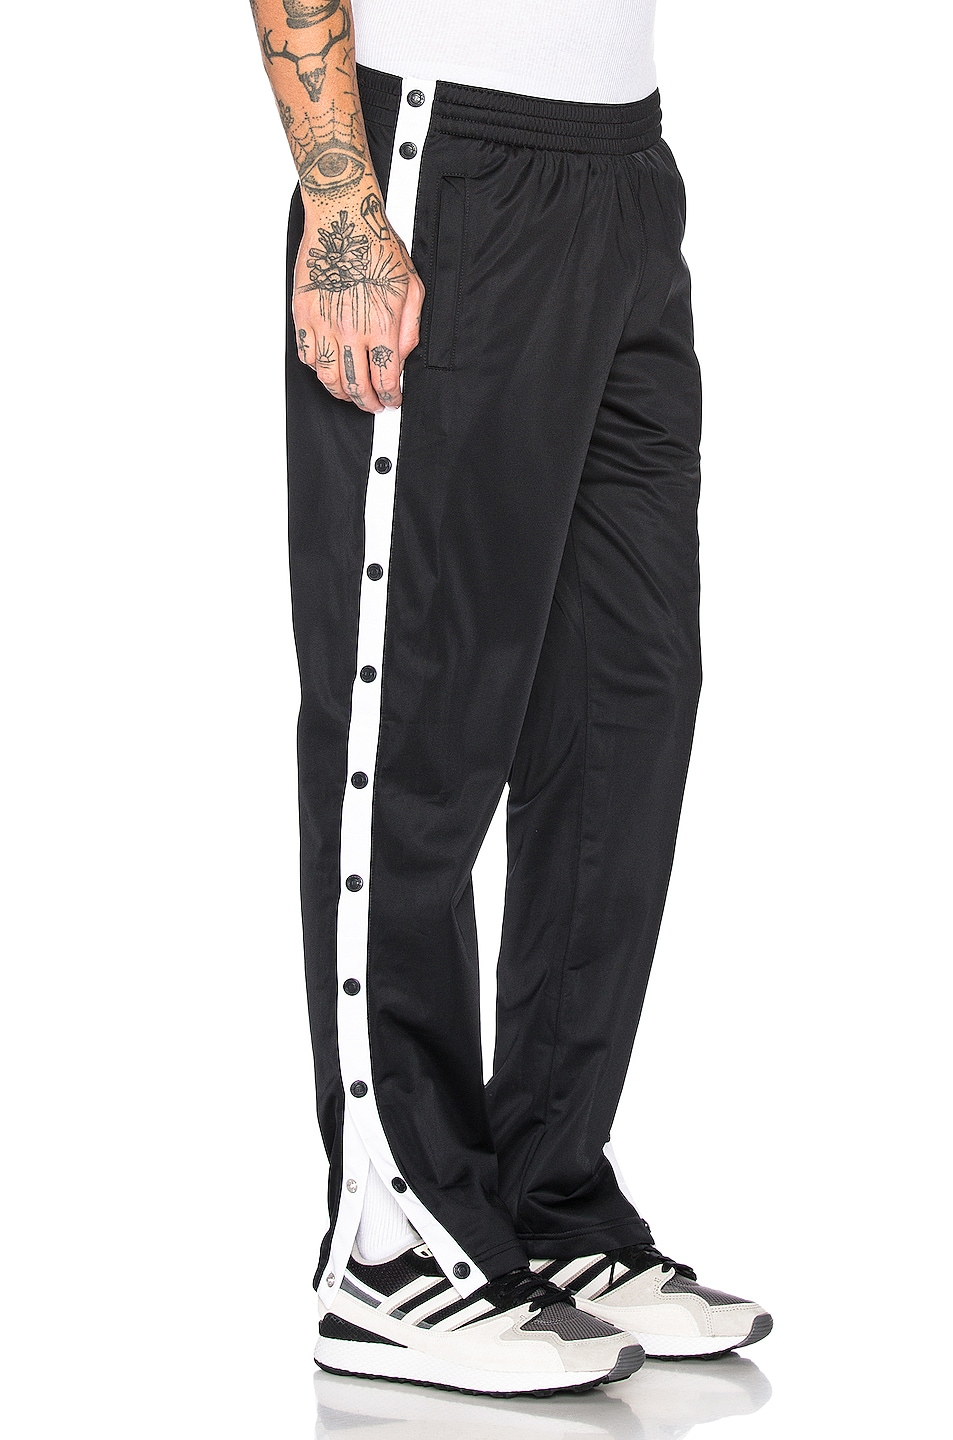 Image 3 of Champion Reverse Weave Champion Pants in Black & White